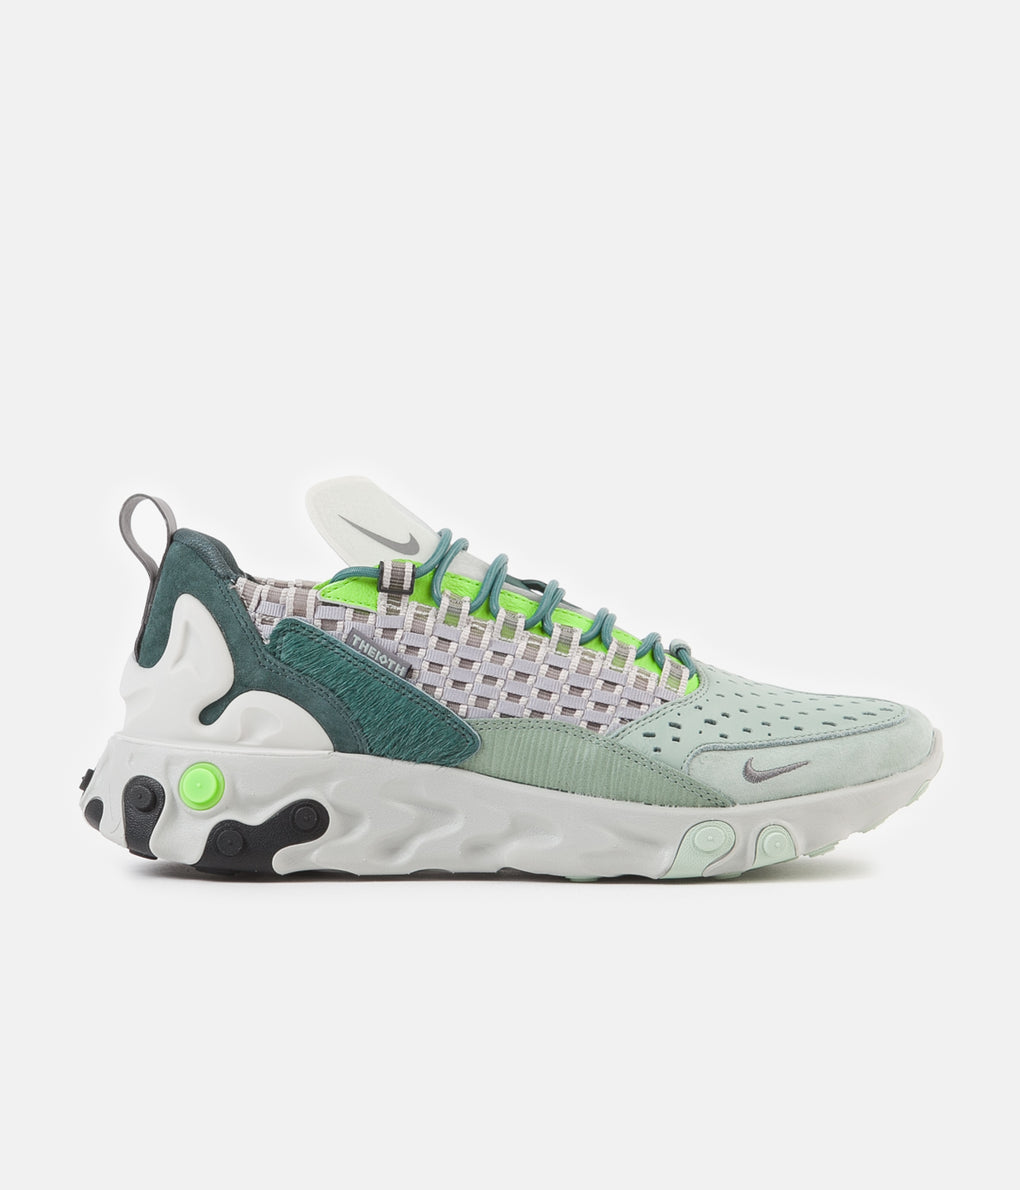 Nike React Sertu Shoes - Faded Spruce / Gunsmoke - Bicoastal